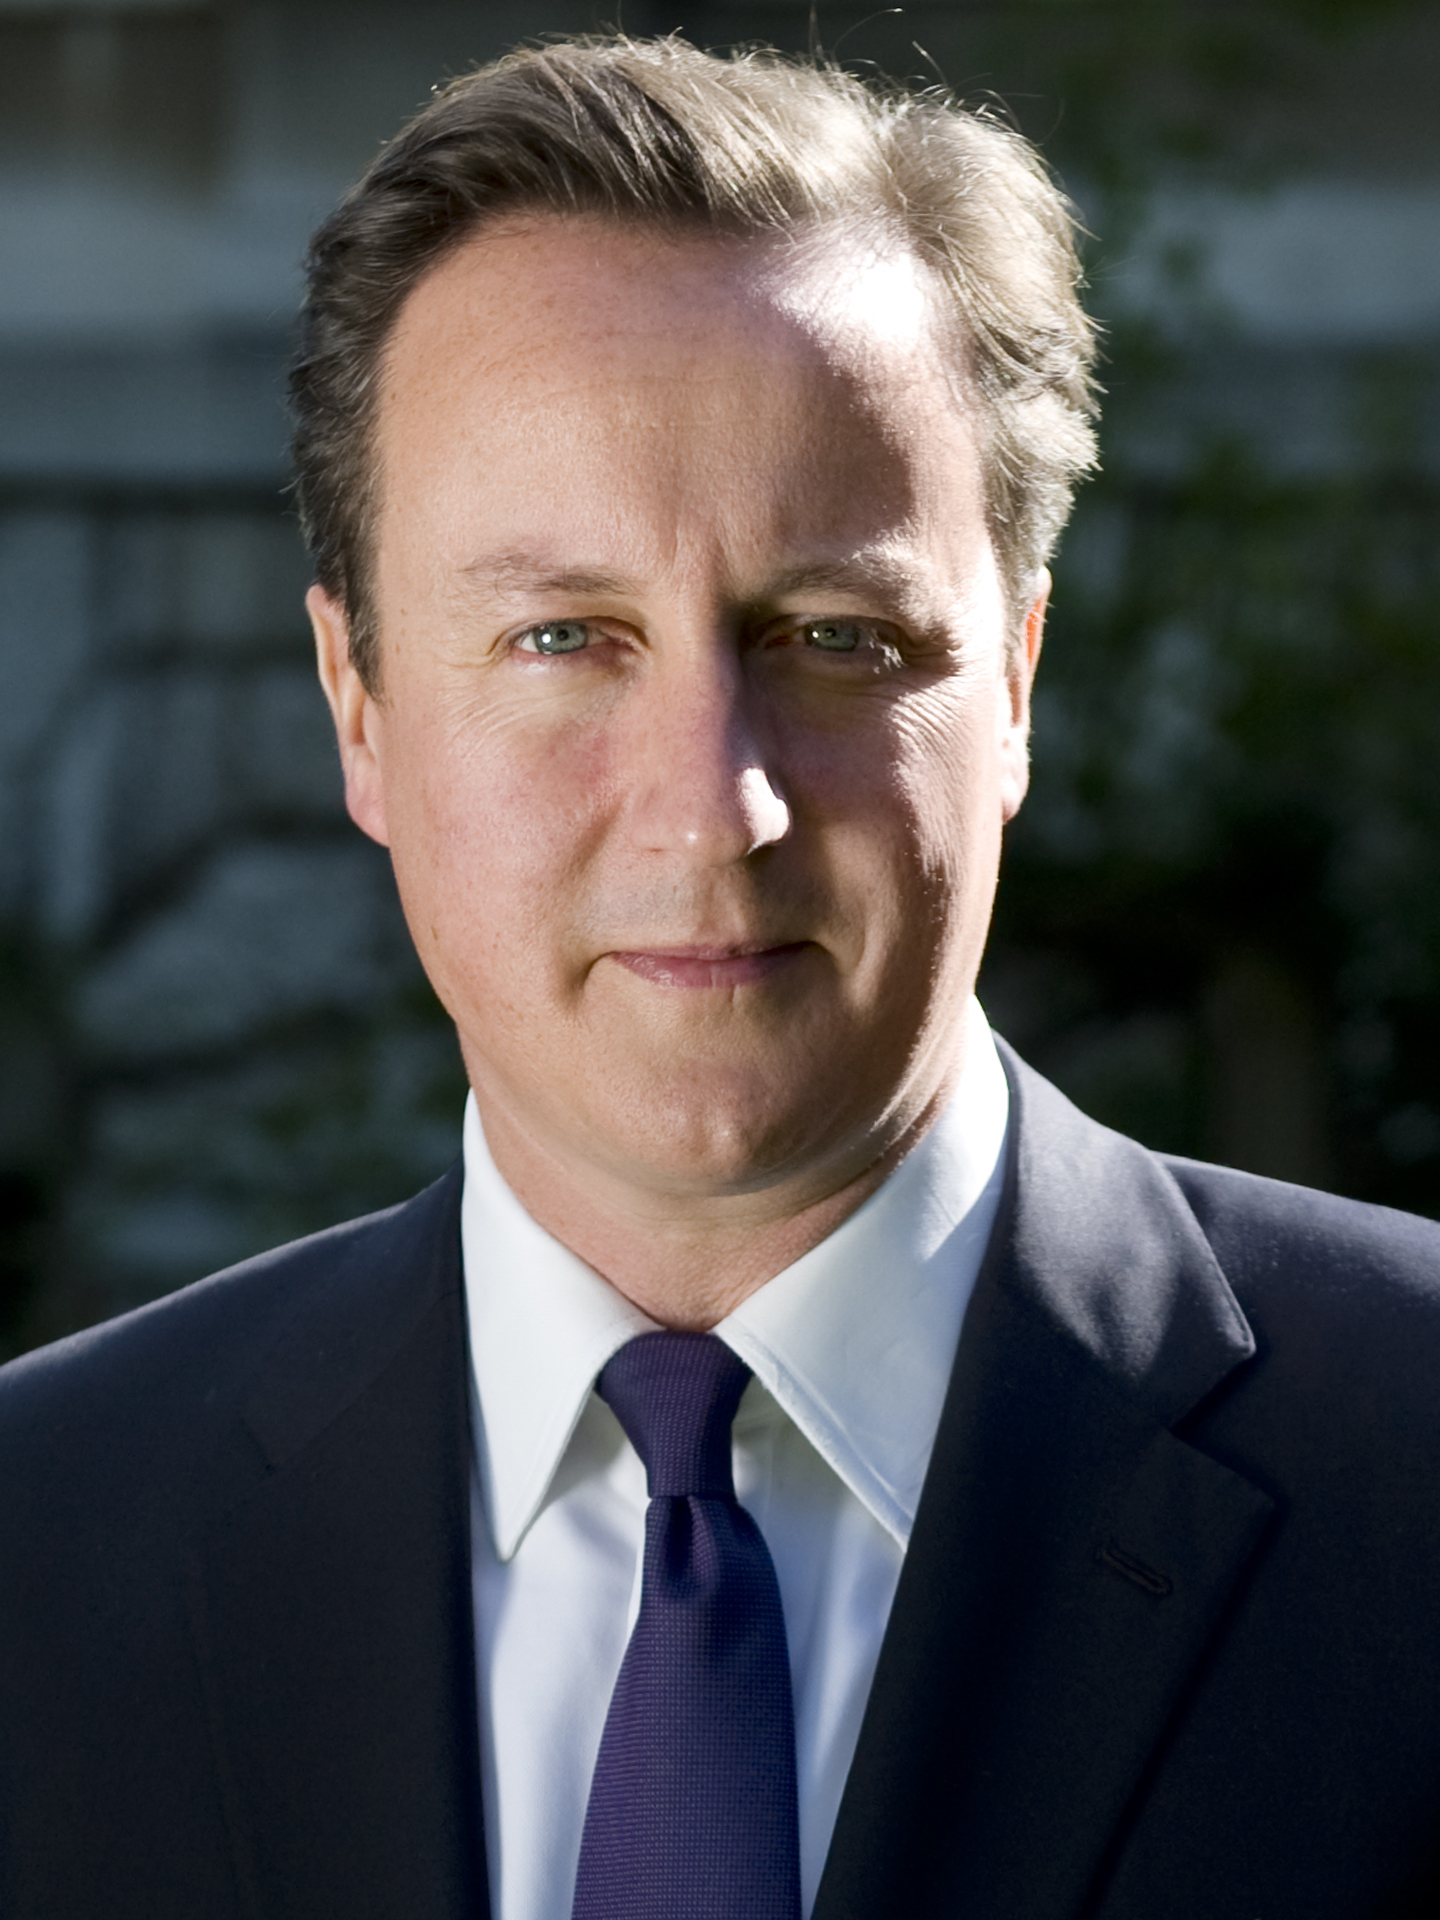 Description david cameron official